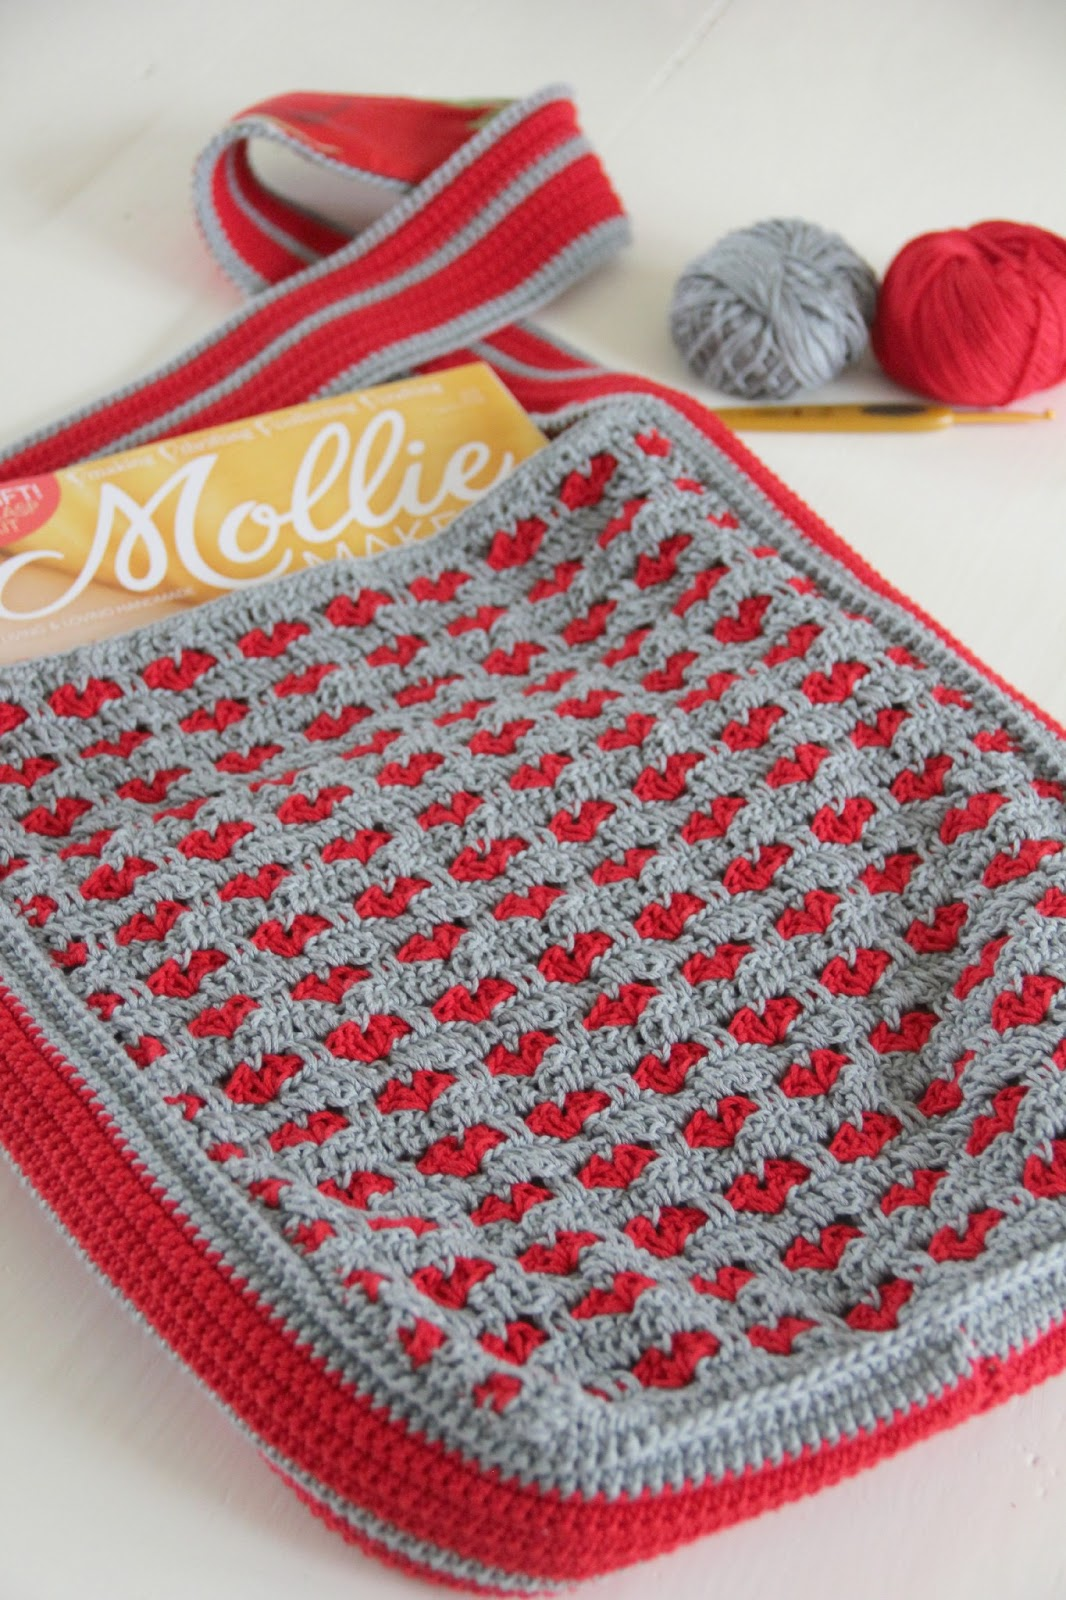 The Heartfelt Company Crochet Bag With Hearts Tutorial